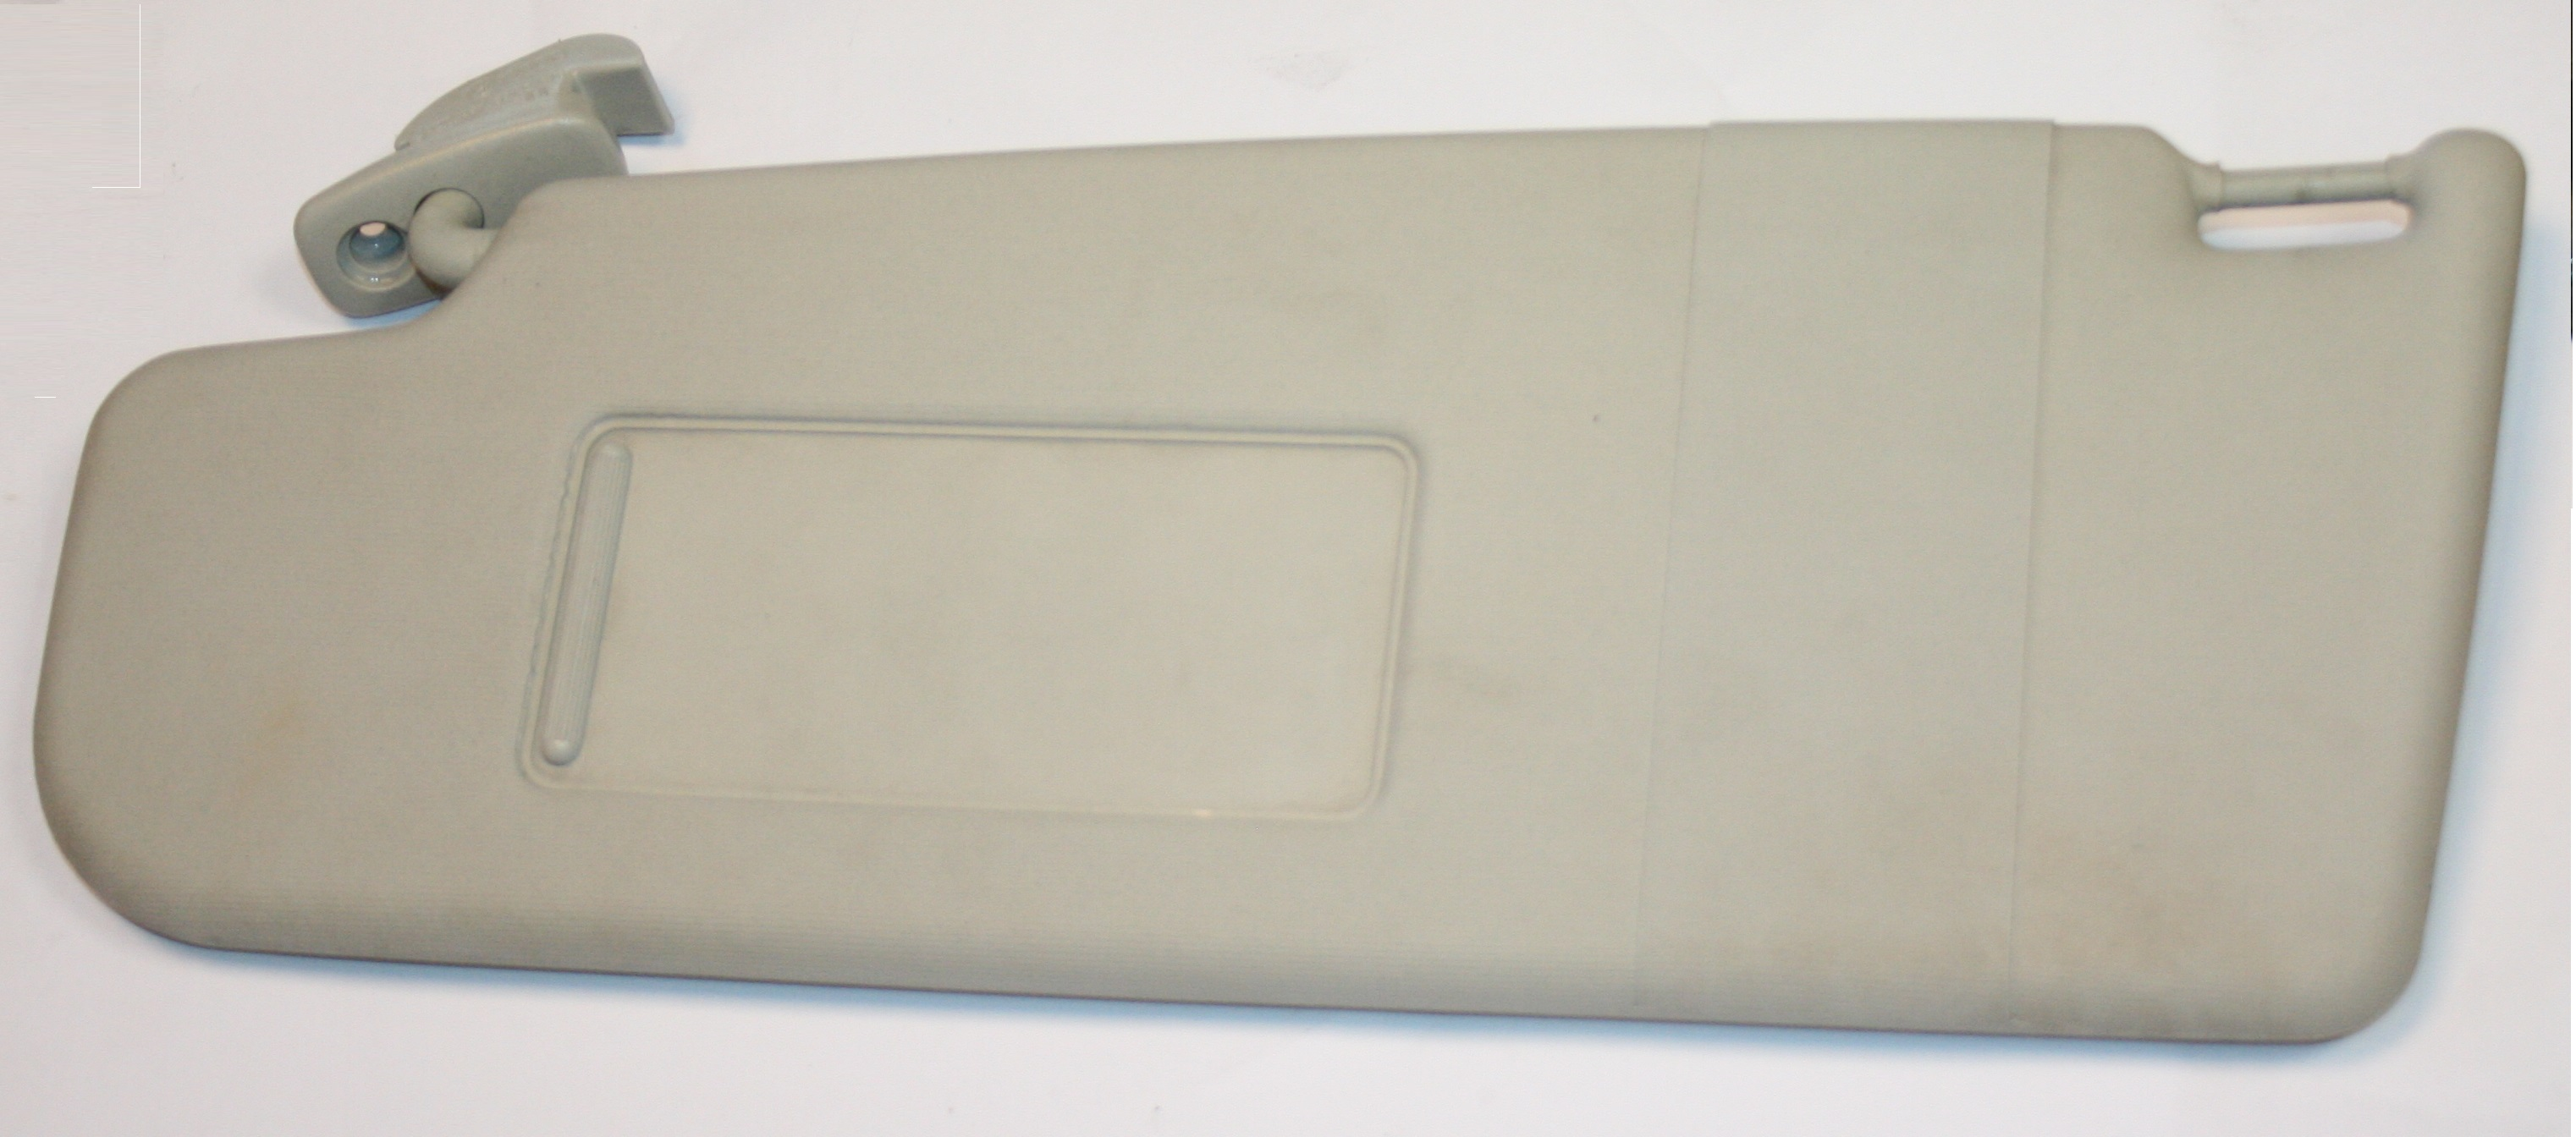 VW Polo Sun Visor & Slide Mirror 2002 to 2009 Left Side Front 6Q0 857 551 E/F/G